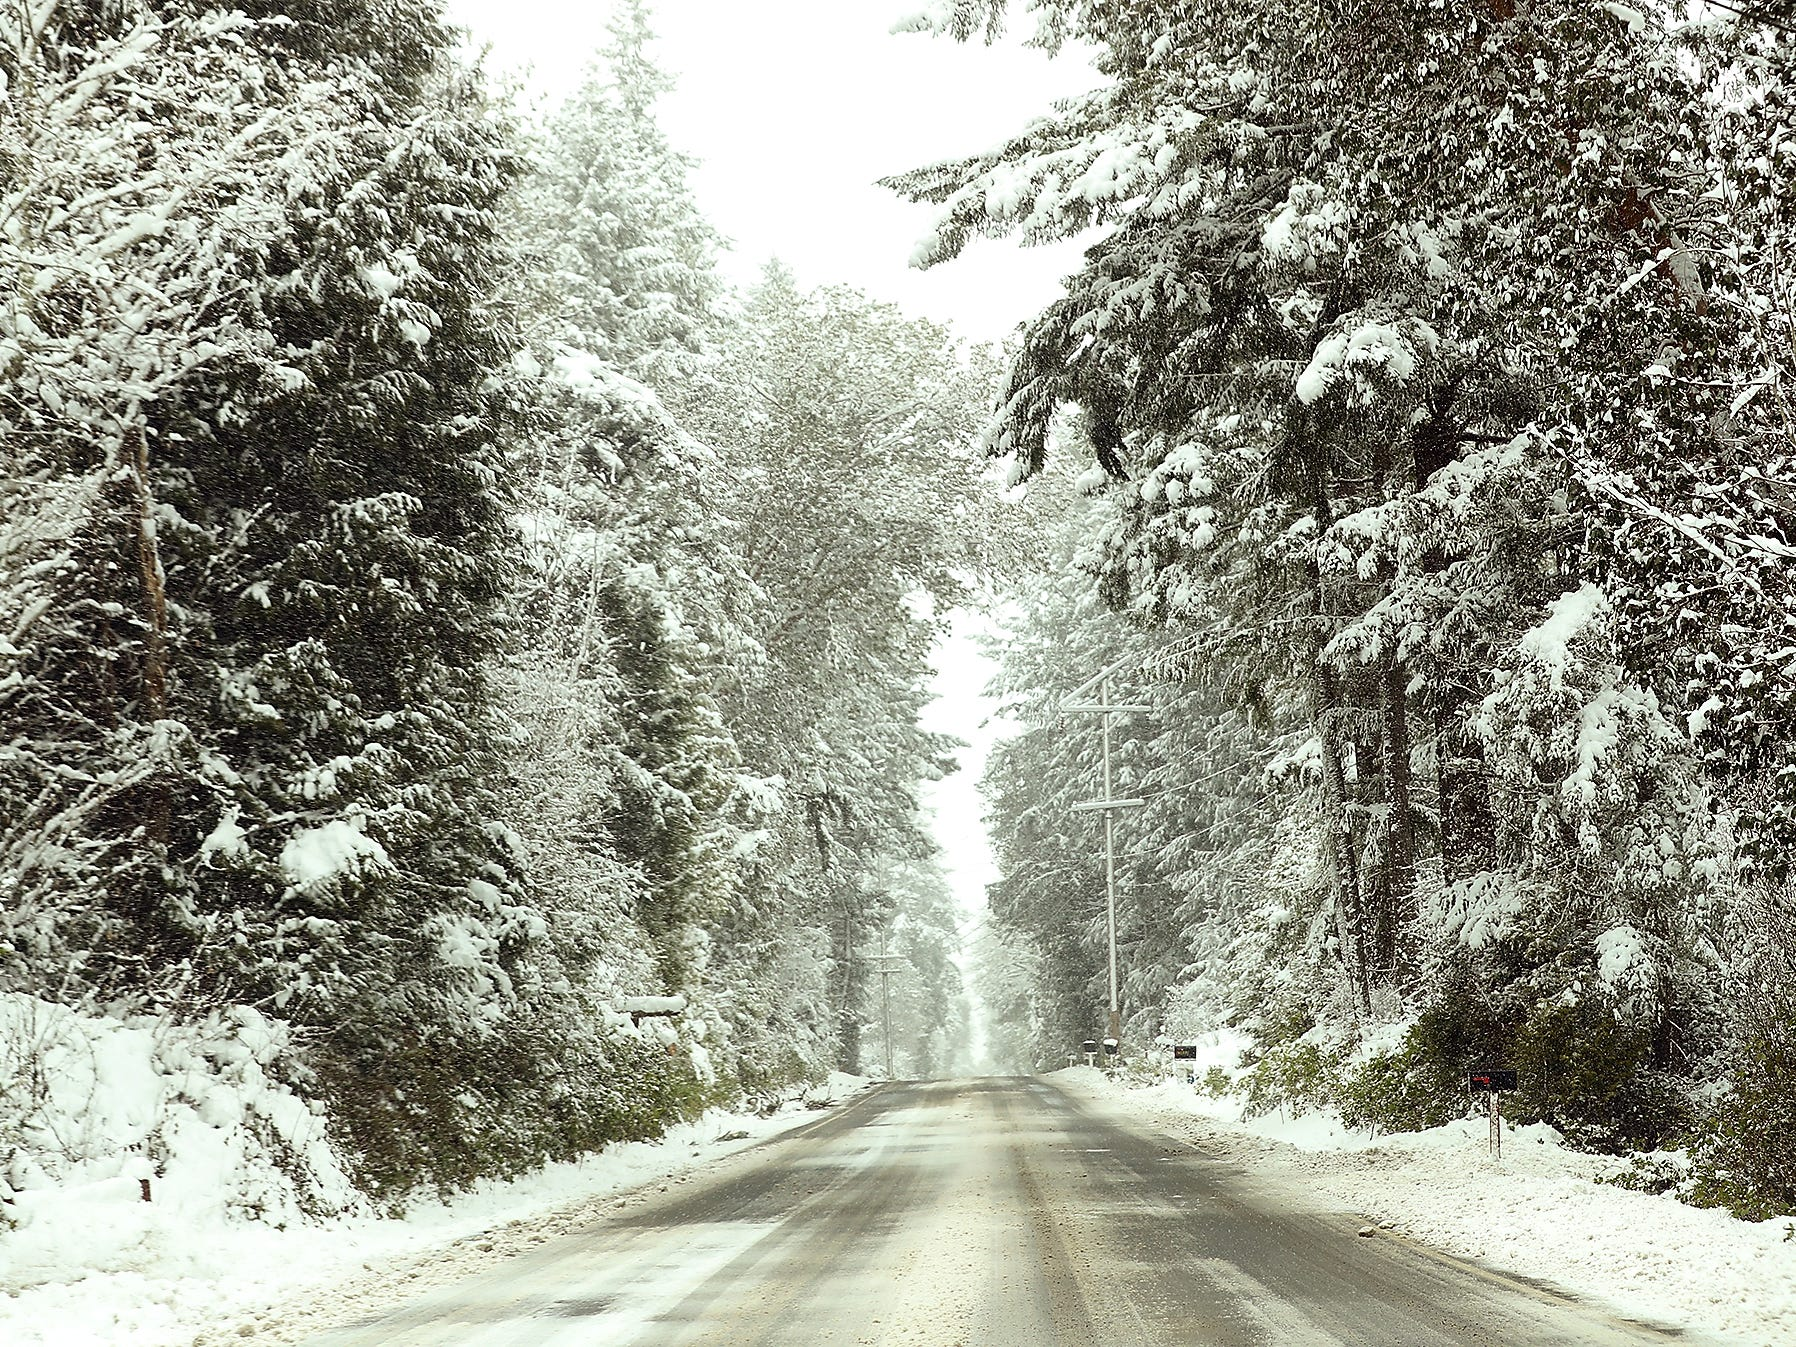 Snow covered trees line Brownsville Highway in Central Kitsap on a snowy Monday, February 11, 2019.